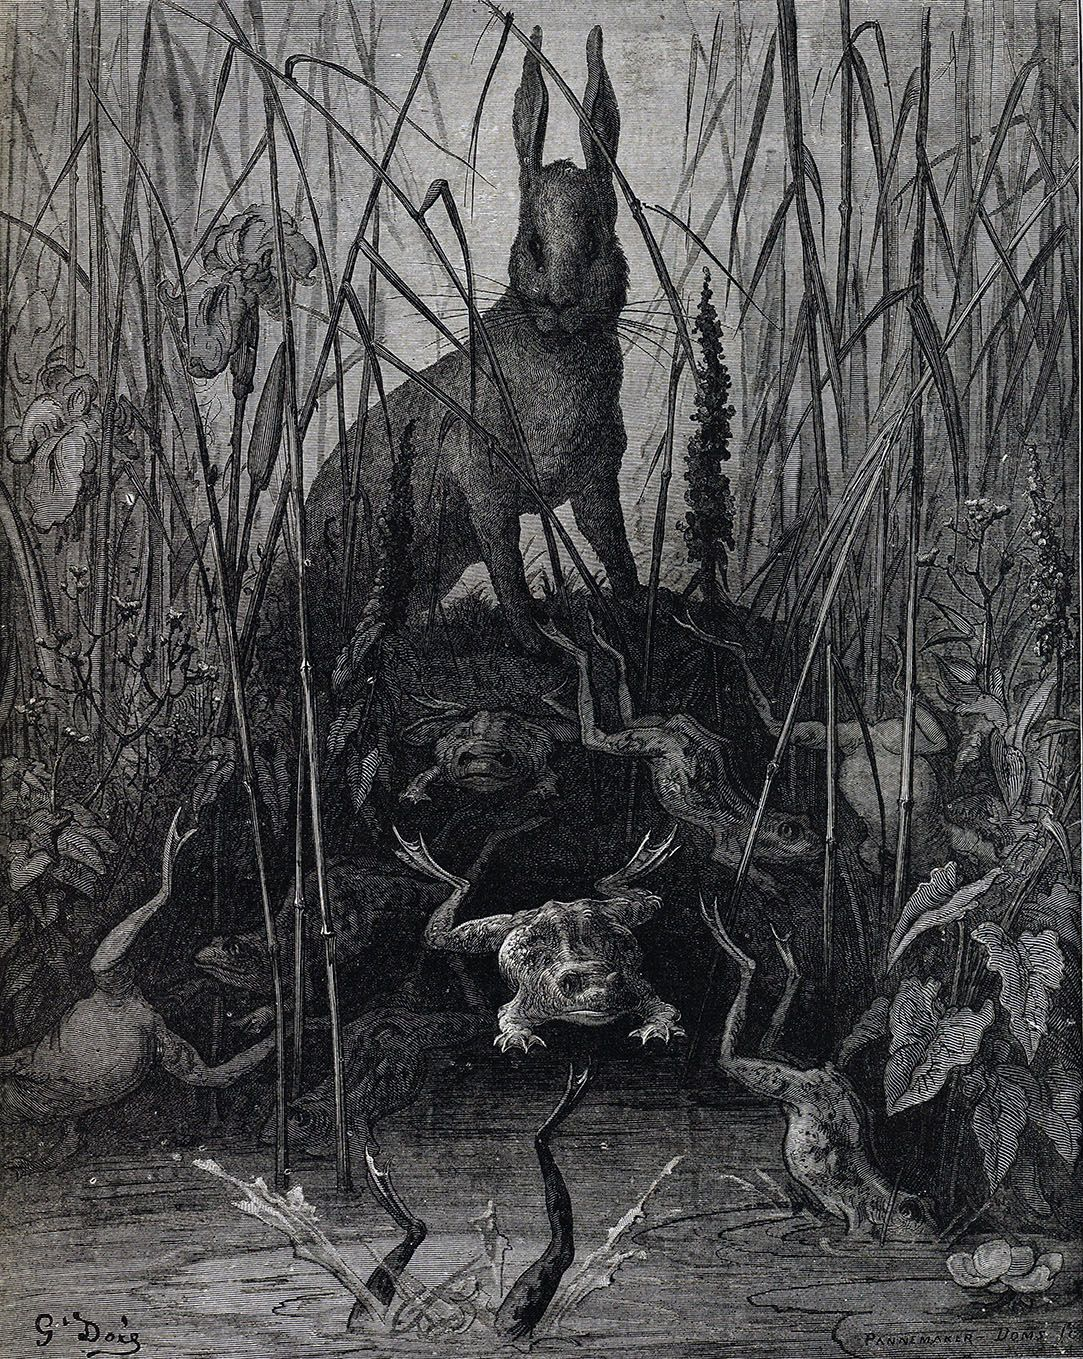 Jean De La Fontaine S 17th Century Collection Of Fables Was A Popular Topic For Victorian Illustrators Judging By The Number Of Gustave Dore Fairytale Art Art